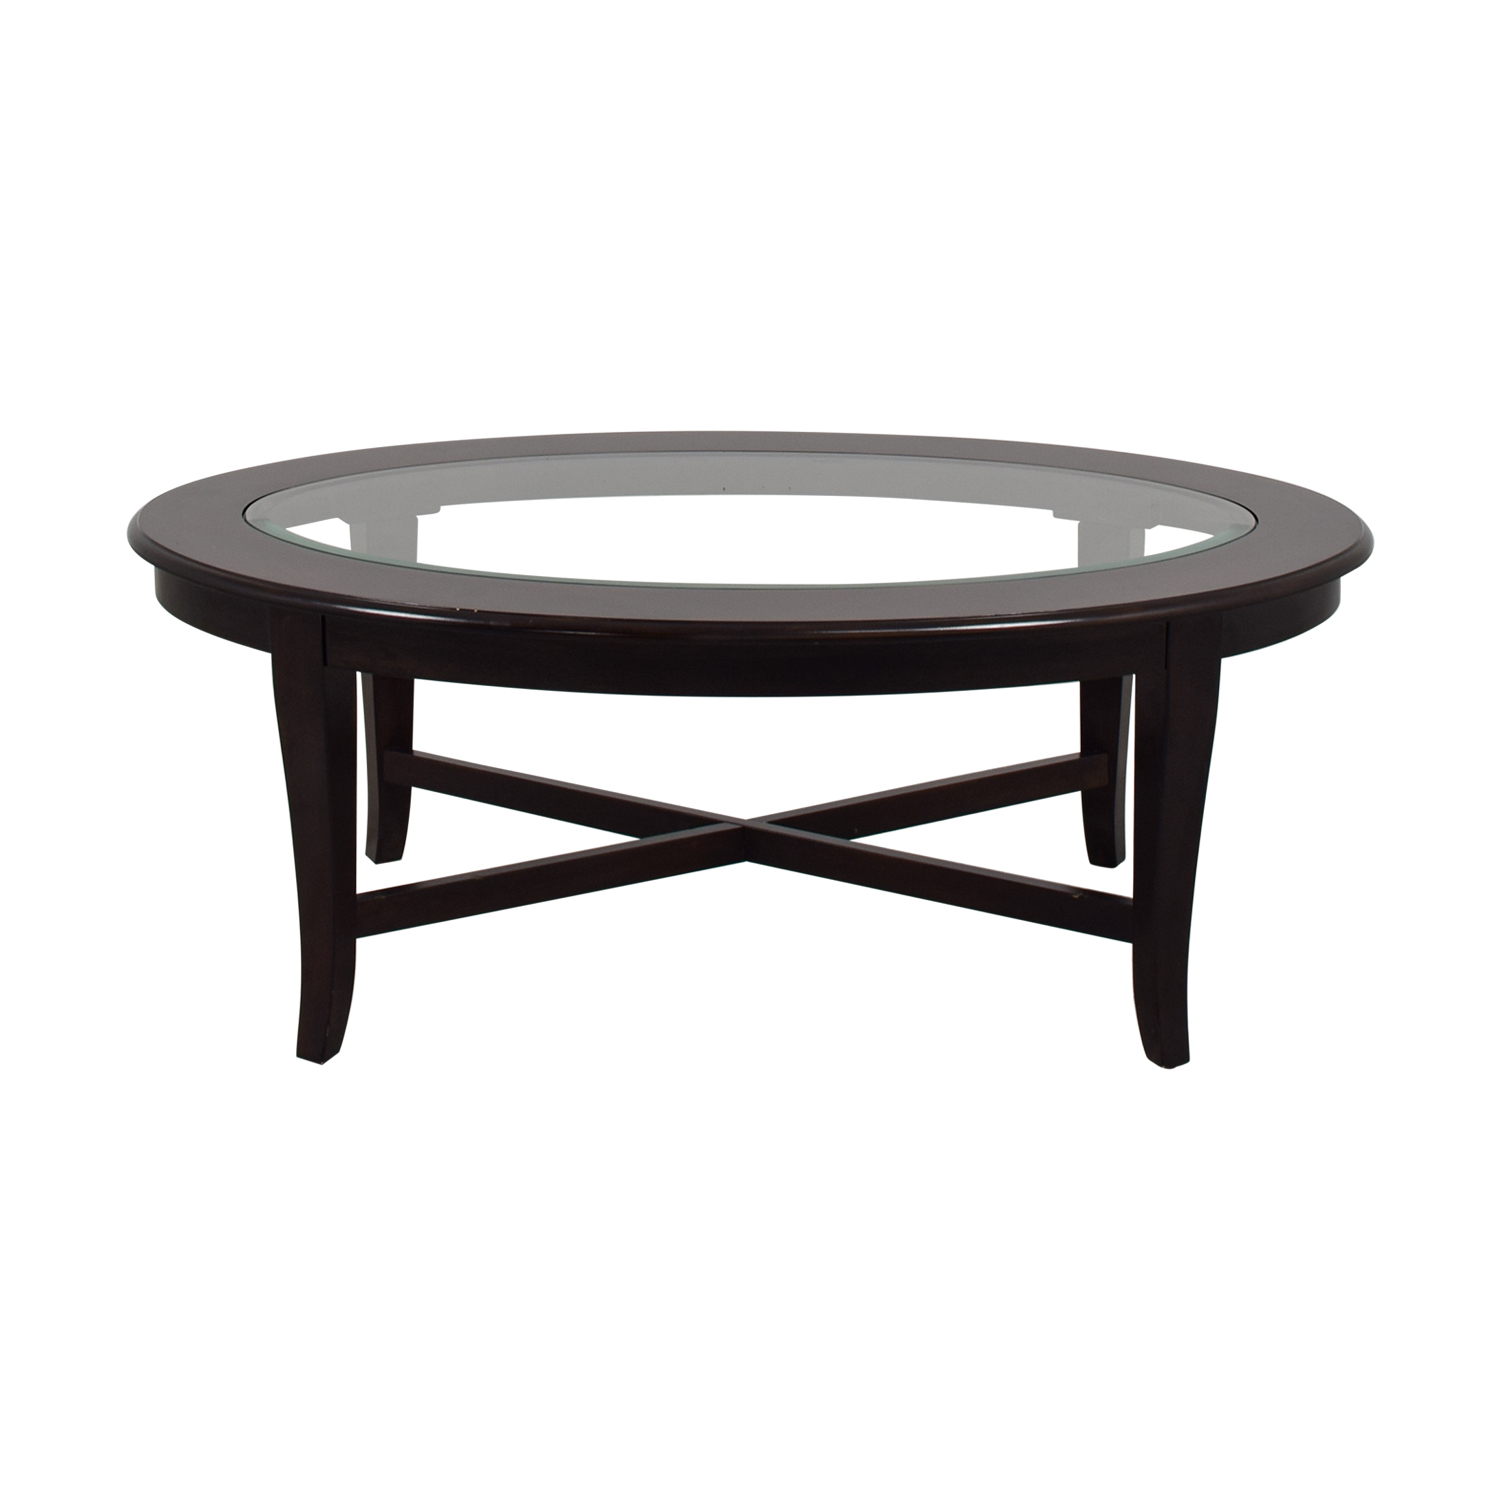 Bobs Furniture Oval Glass Coffee Table Coffee Tables